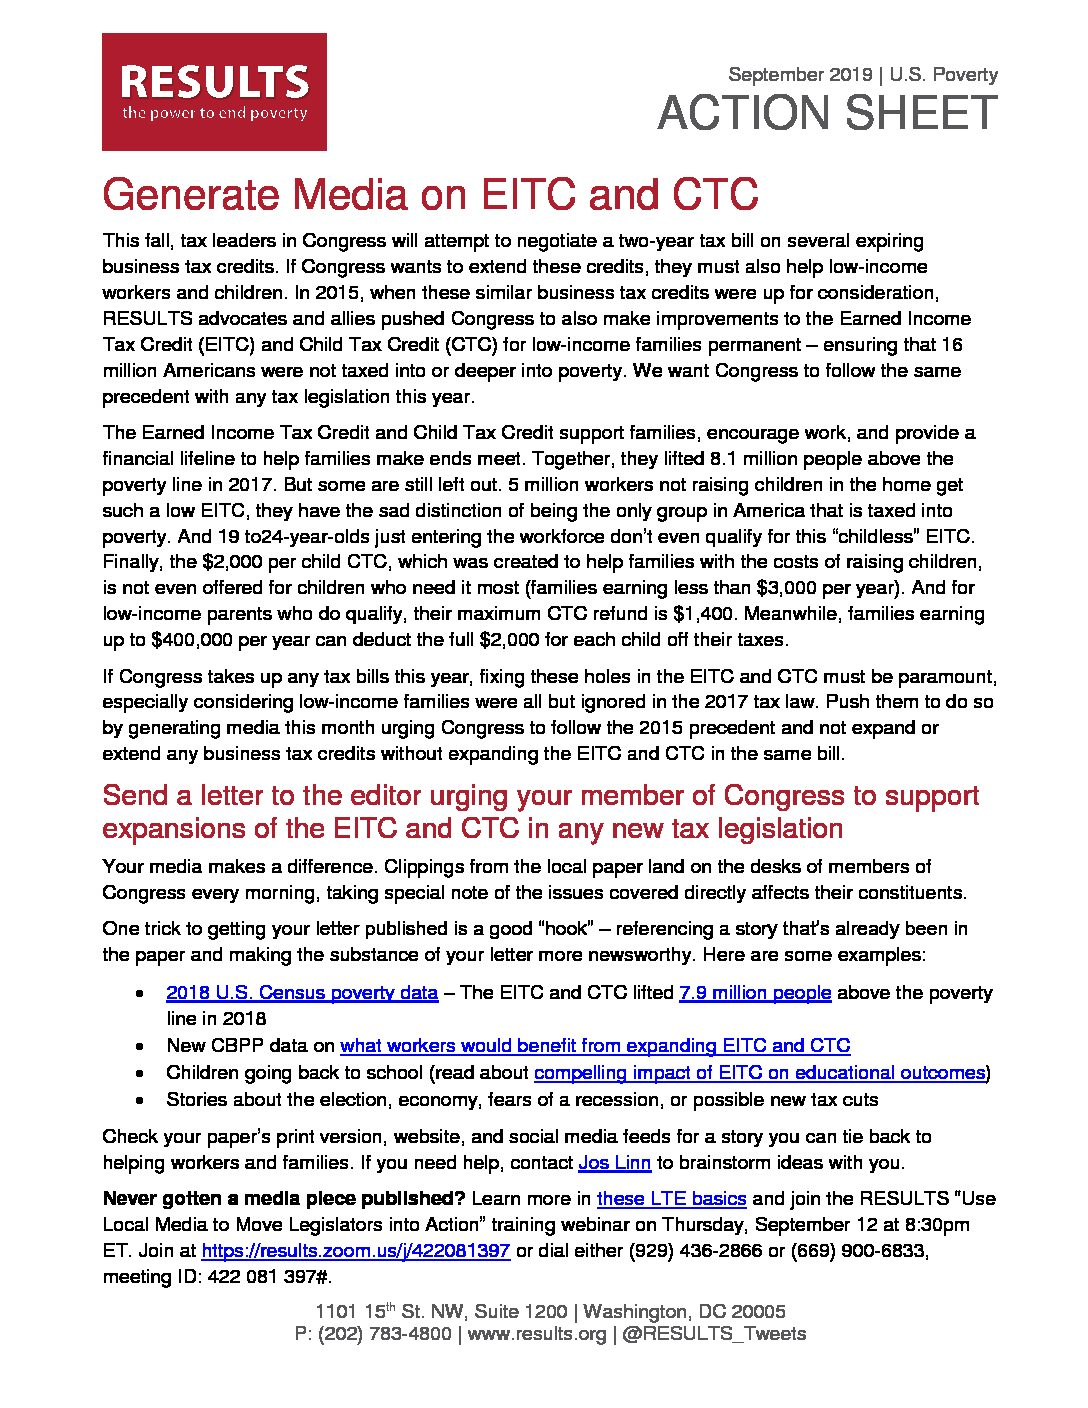 September 2019 U.S. Poverty Action - Generate Media on the EITC and CTC